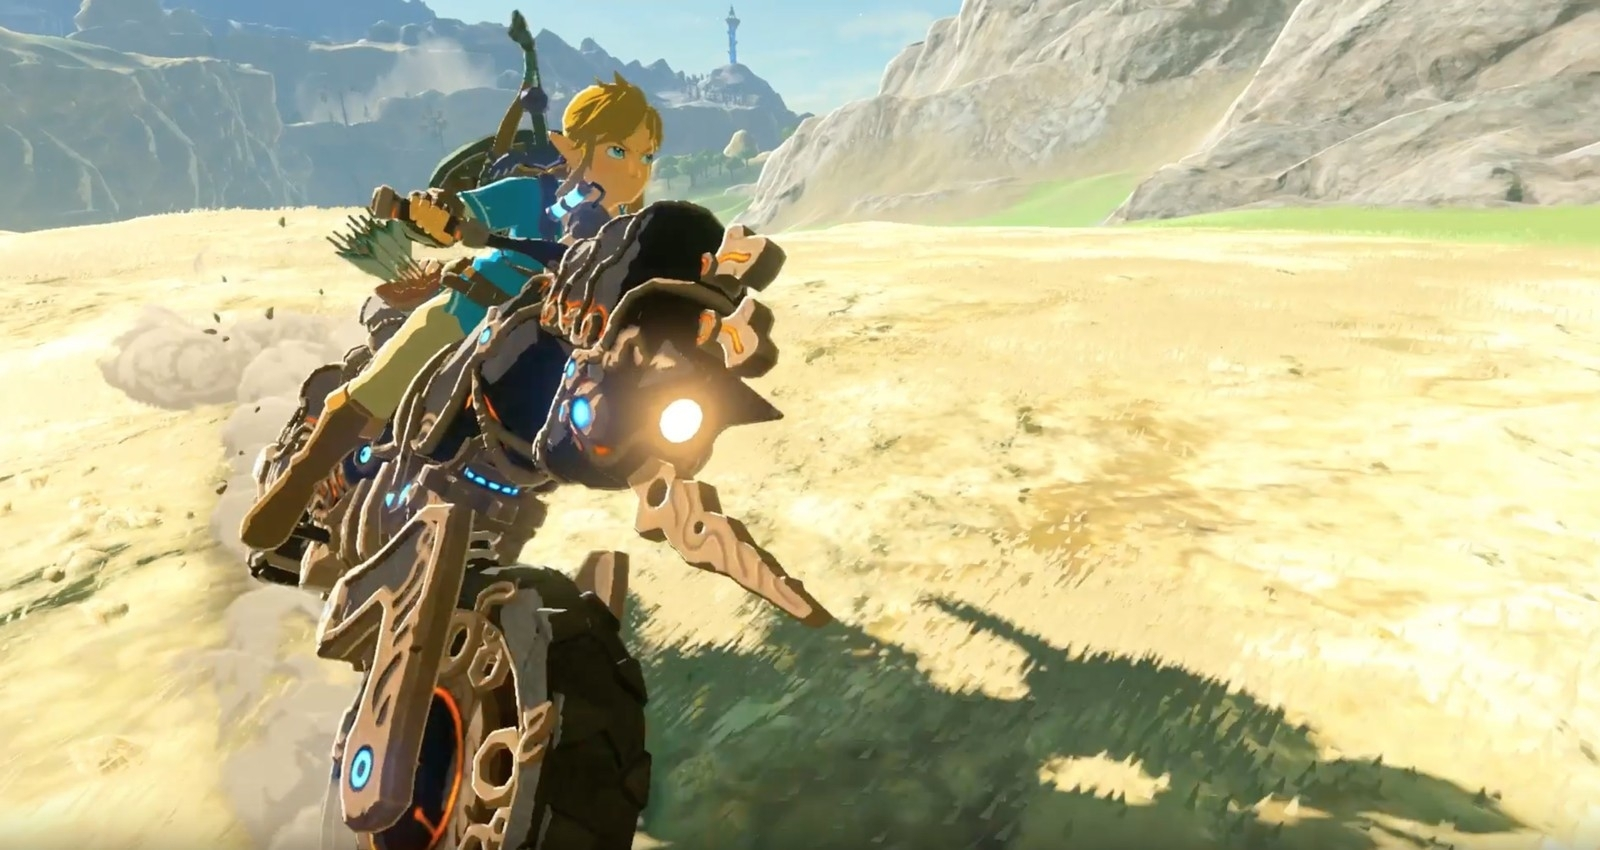 Скриншот из игры Legend of Zelda: Breath of the Wild, The - Expansion Pass под номером 2